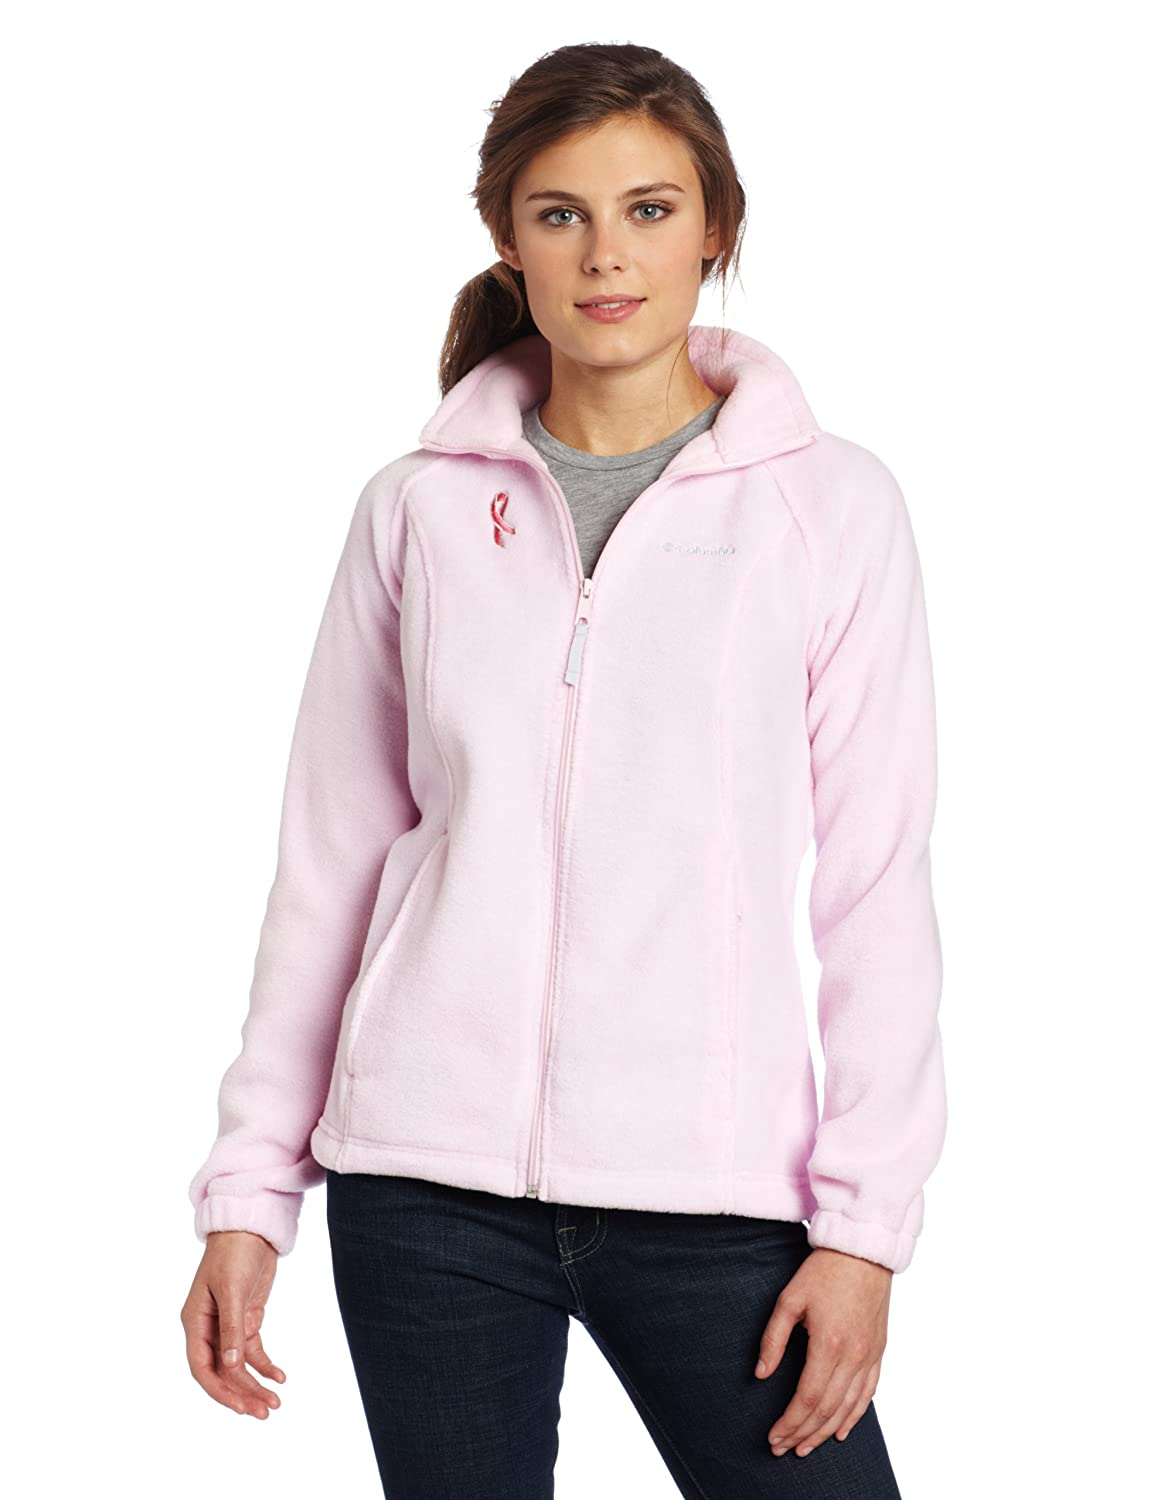 Columbia Womens Tested Tough in Pink Benton Springs Full Zip Jacket